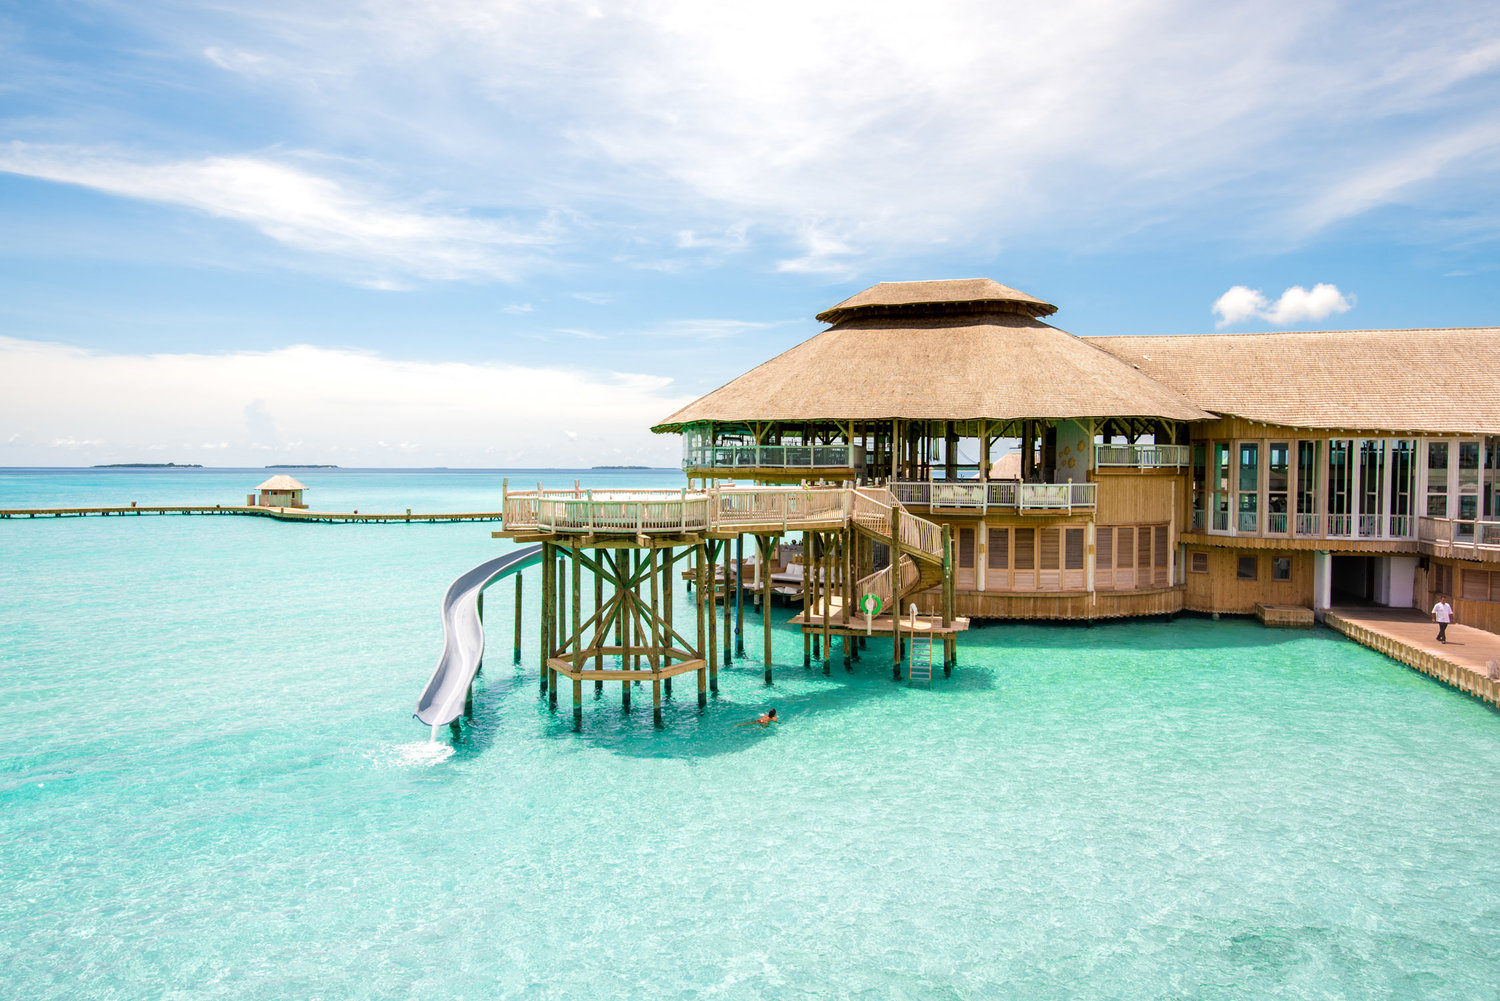 Soneva Jani: A Modern Luxury Maldives Resort